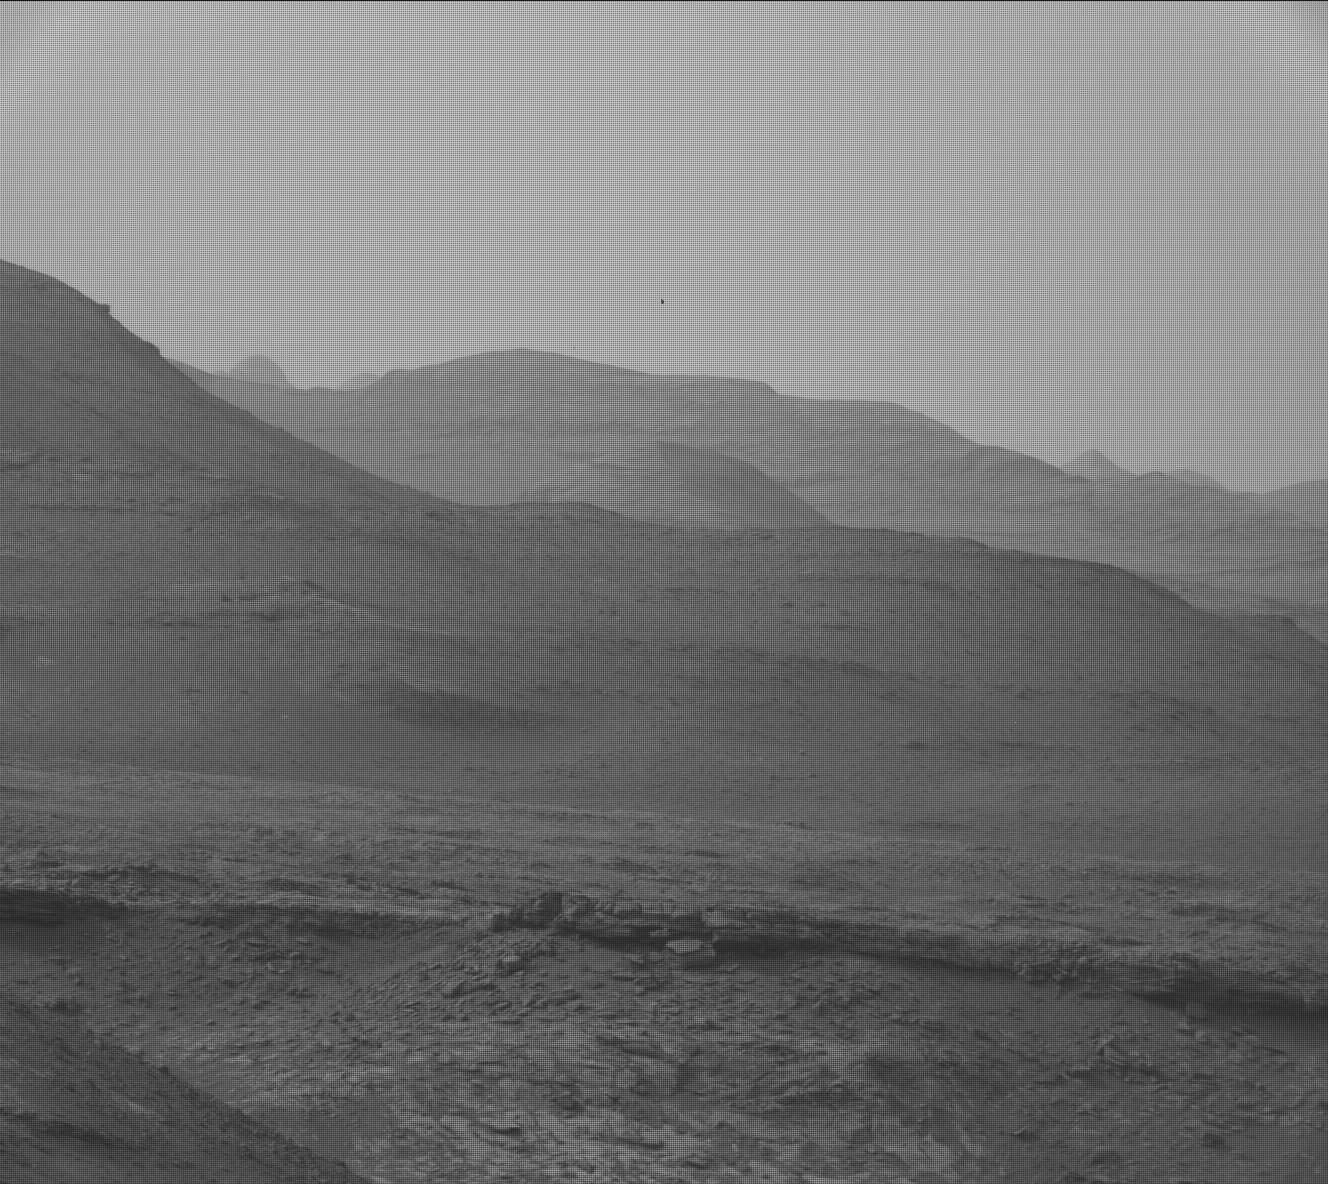 Nasa's Mars rover Curiosity acquired this image using its Mast Camera (Mastcam) on Sol 2287